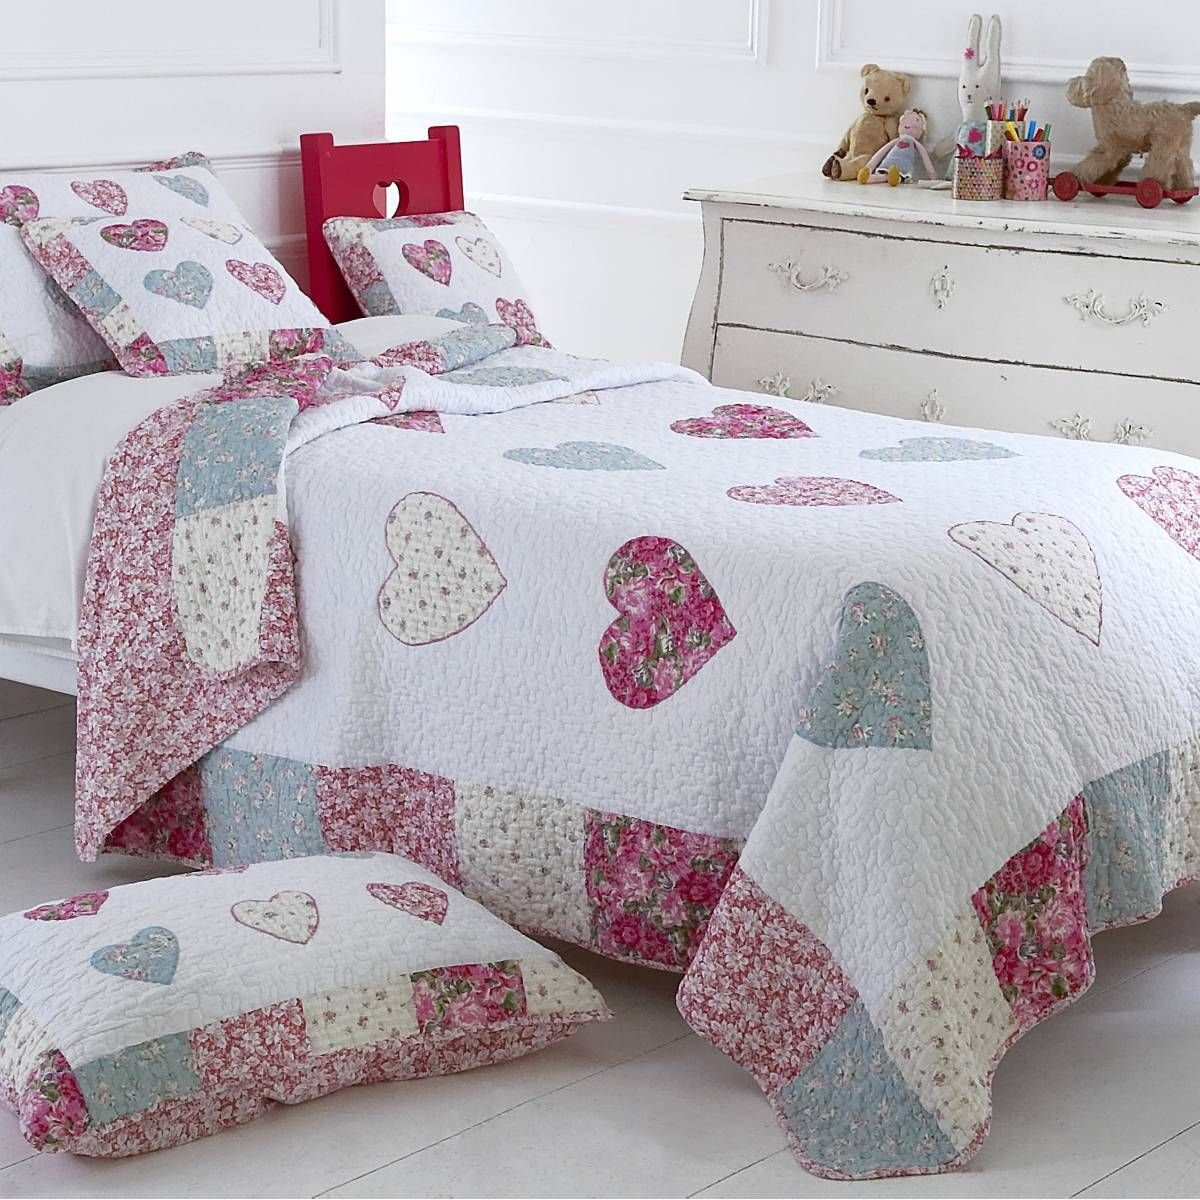 heart quilts girls bedding bella pink floral. Black Bedroom Furniture Sets. Home Design Ideas